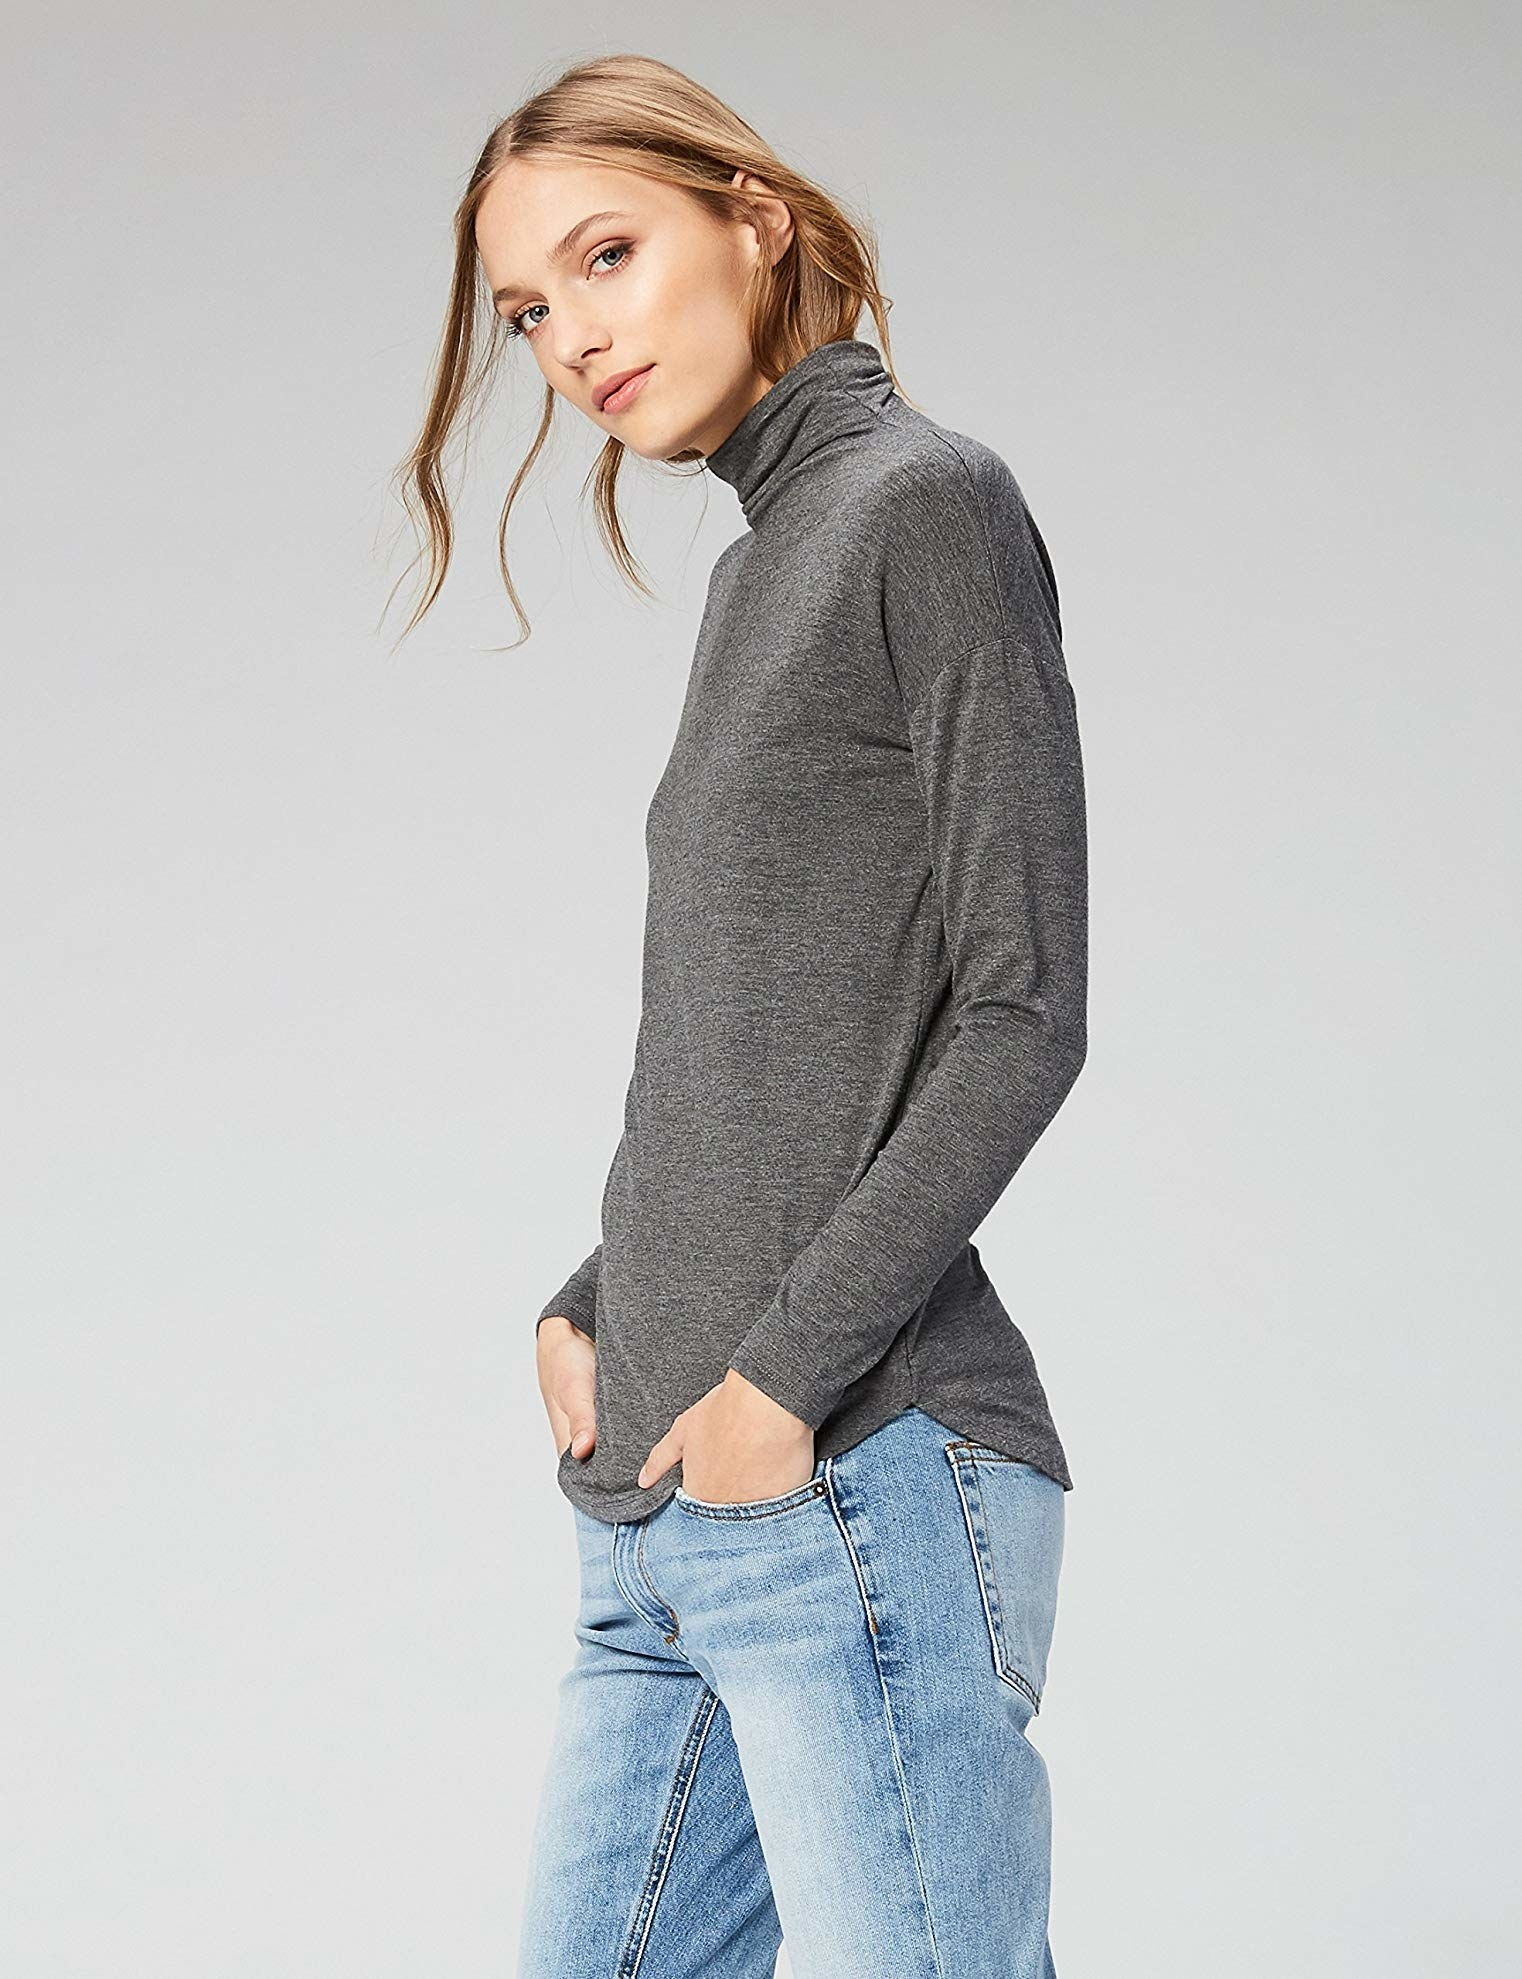 Model wearing the gray turtleneck